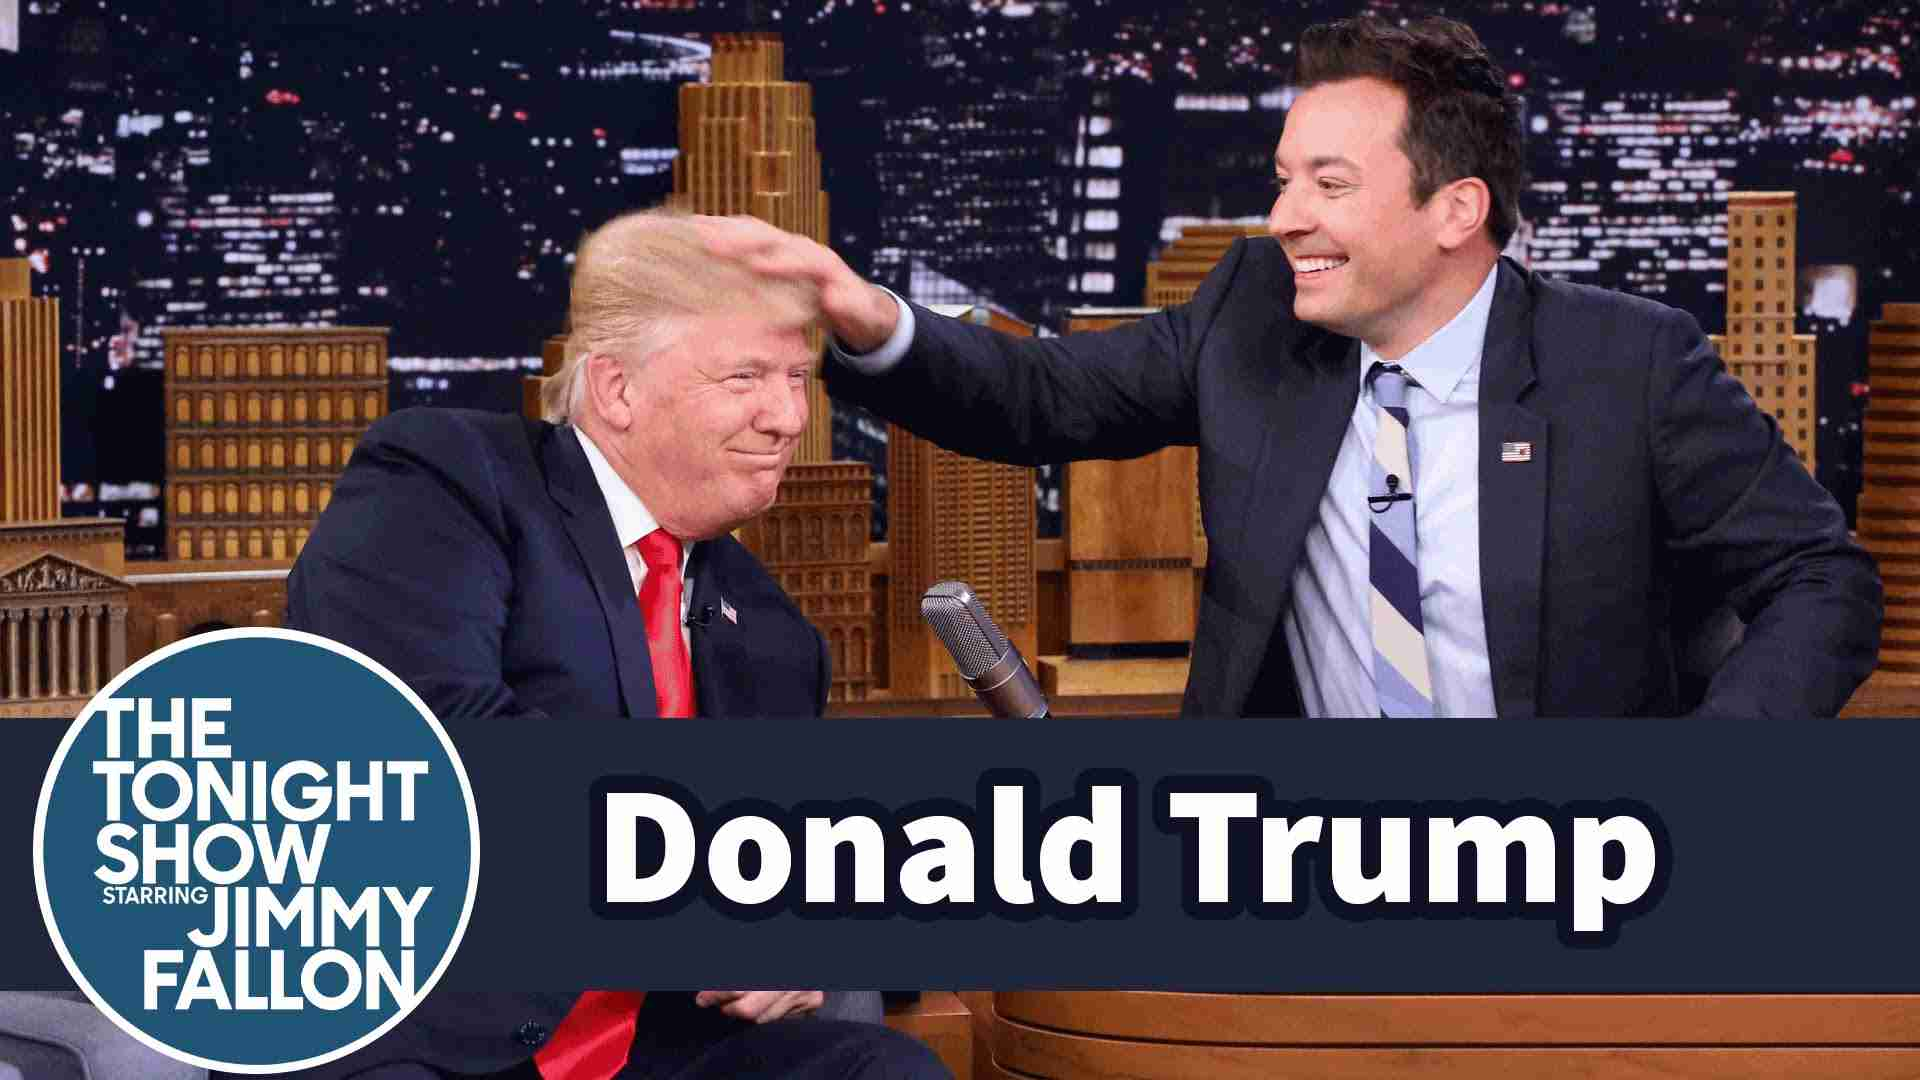 Donald Trump Lets Jimmy Fallon Mess Up His Hair - YouTube